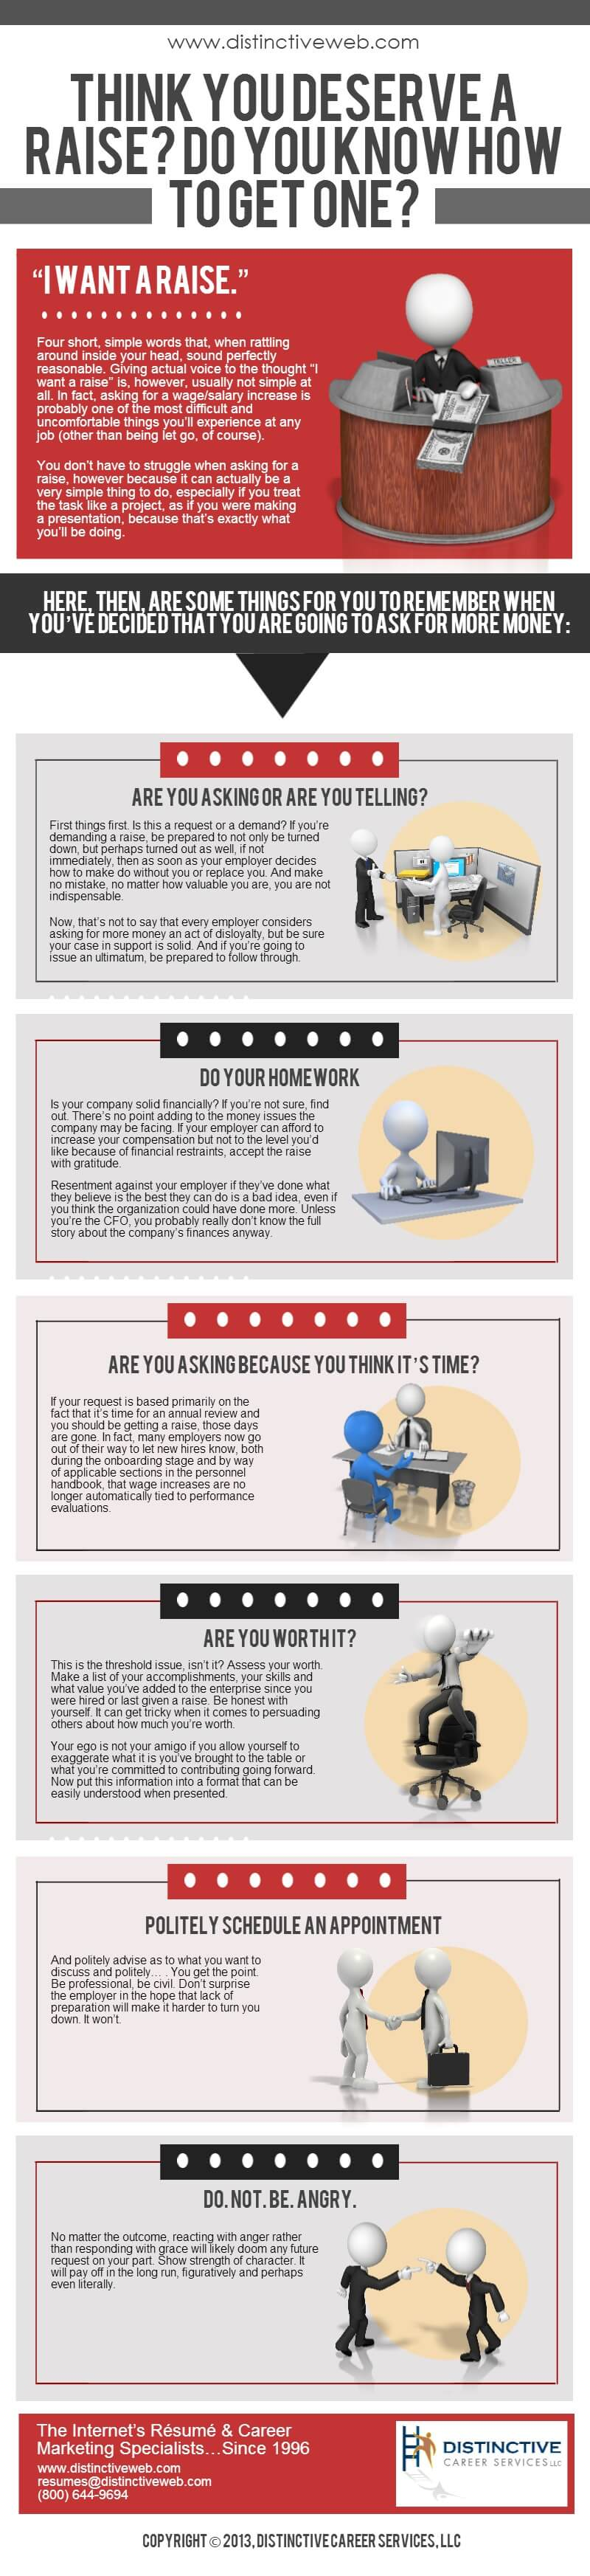 How to ask for a raise and increase your salary - infographic